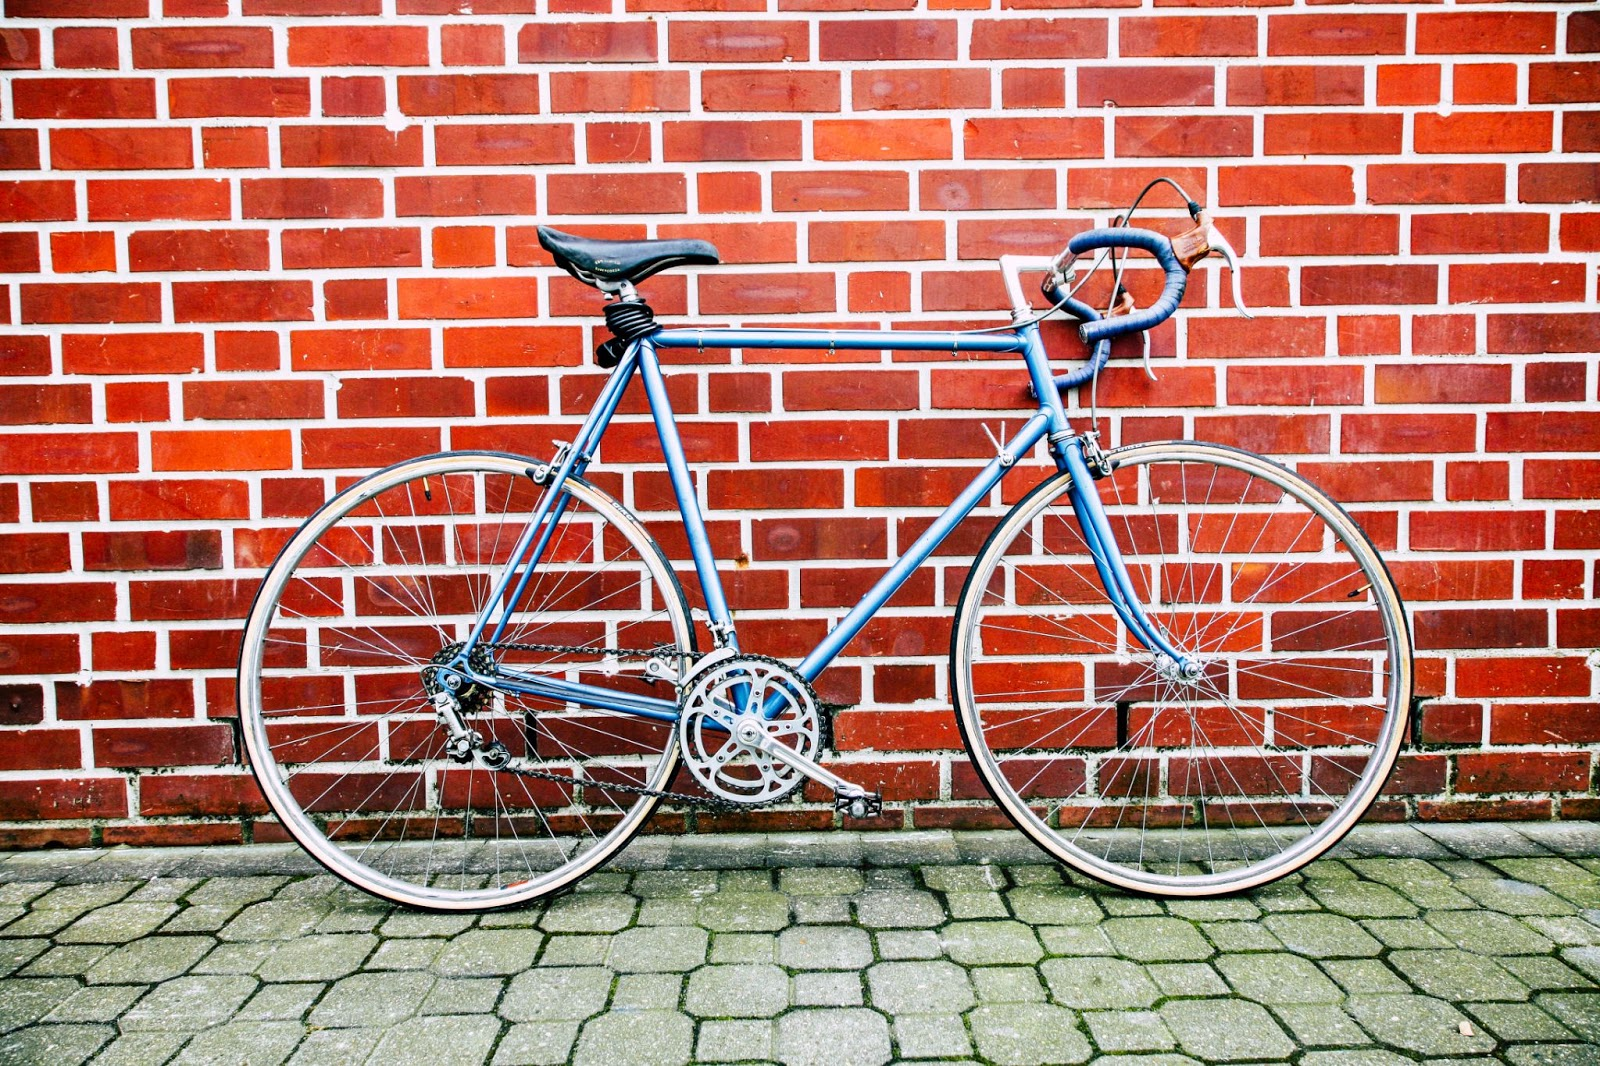 blue bicycle parked in front of a red brick wall